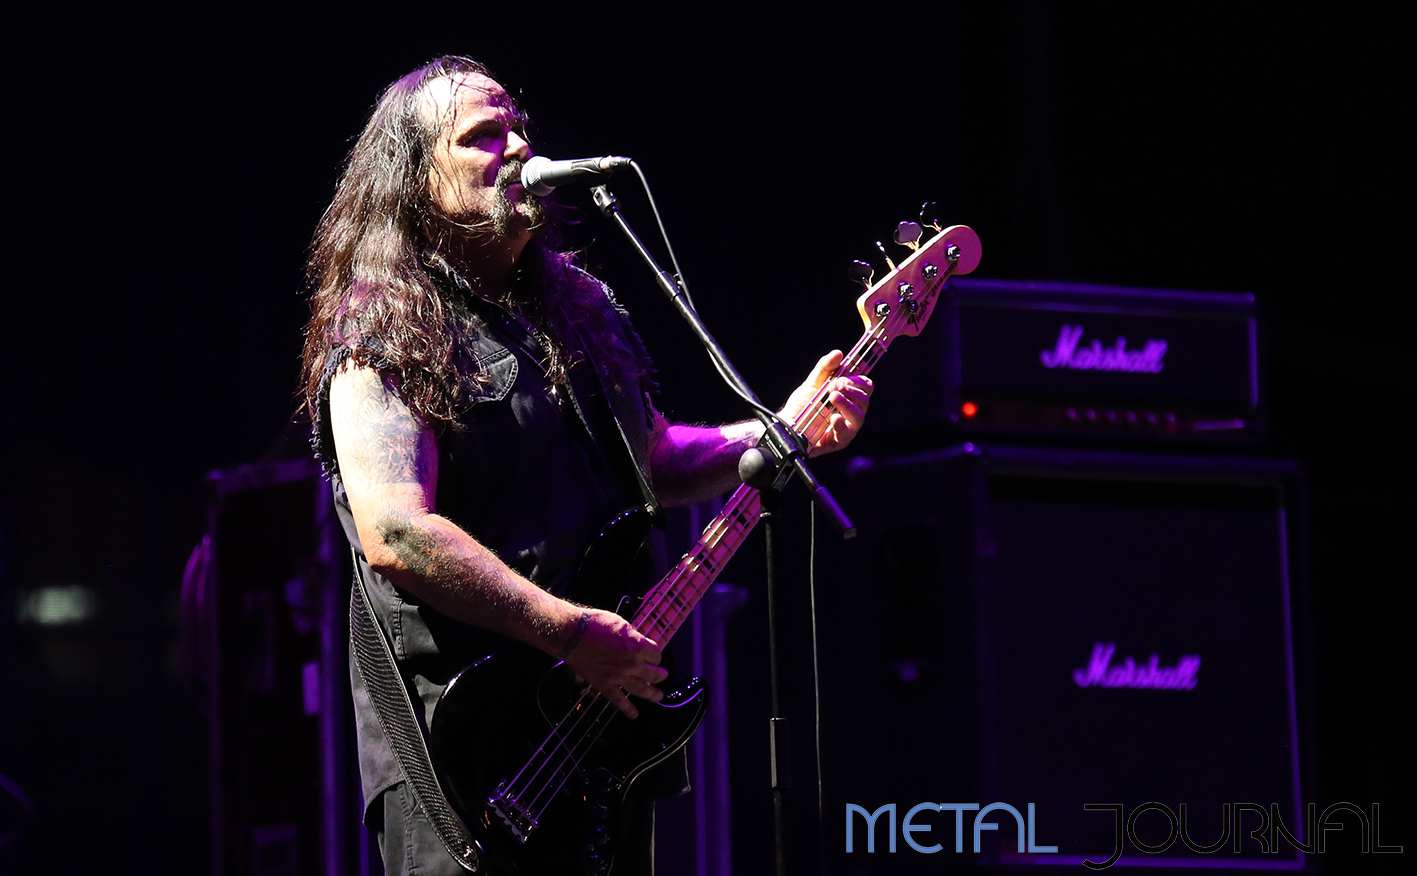 deicide - leyendas del rock 2019 metal journal pic 1